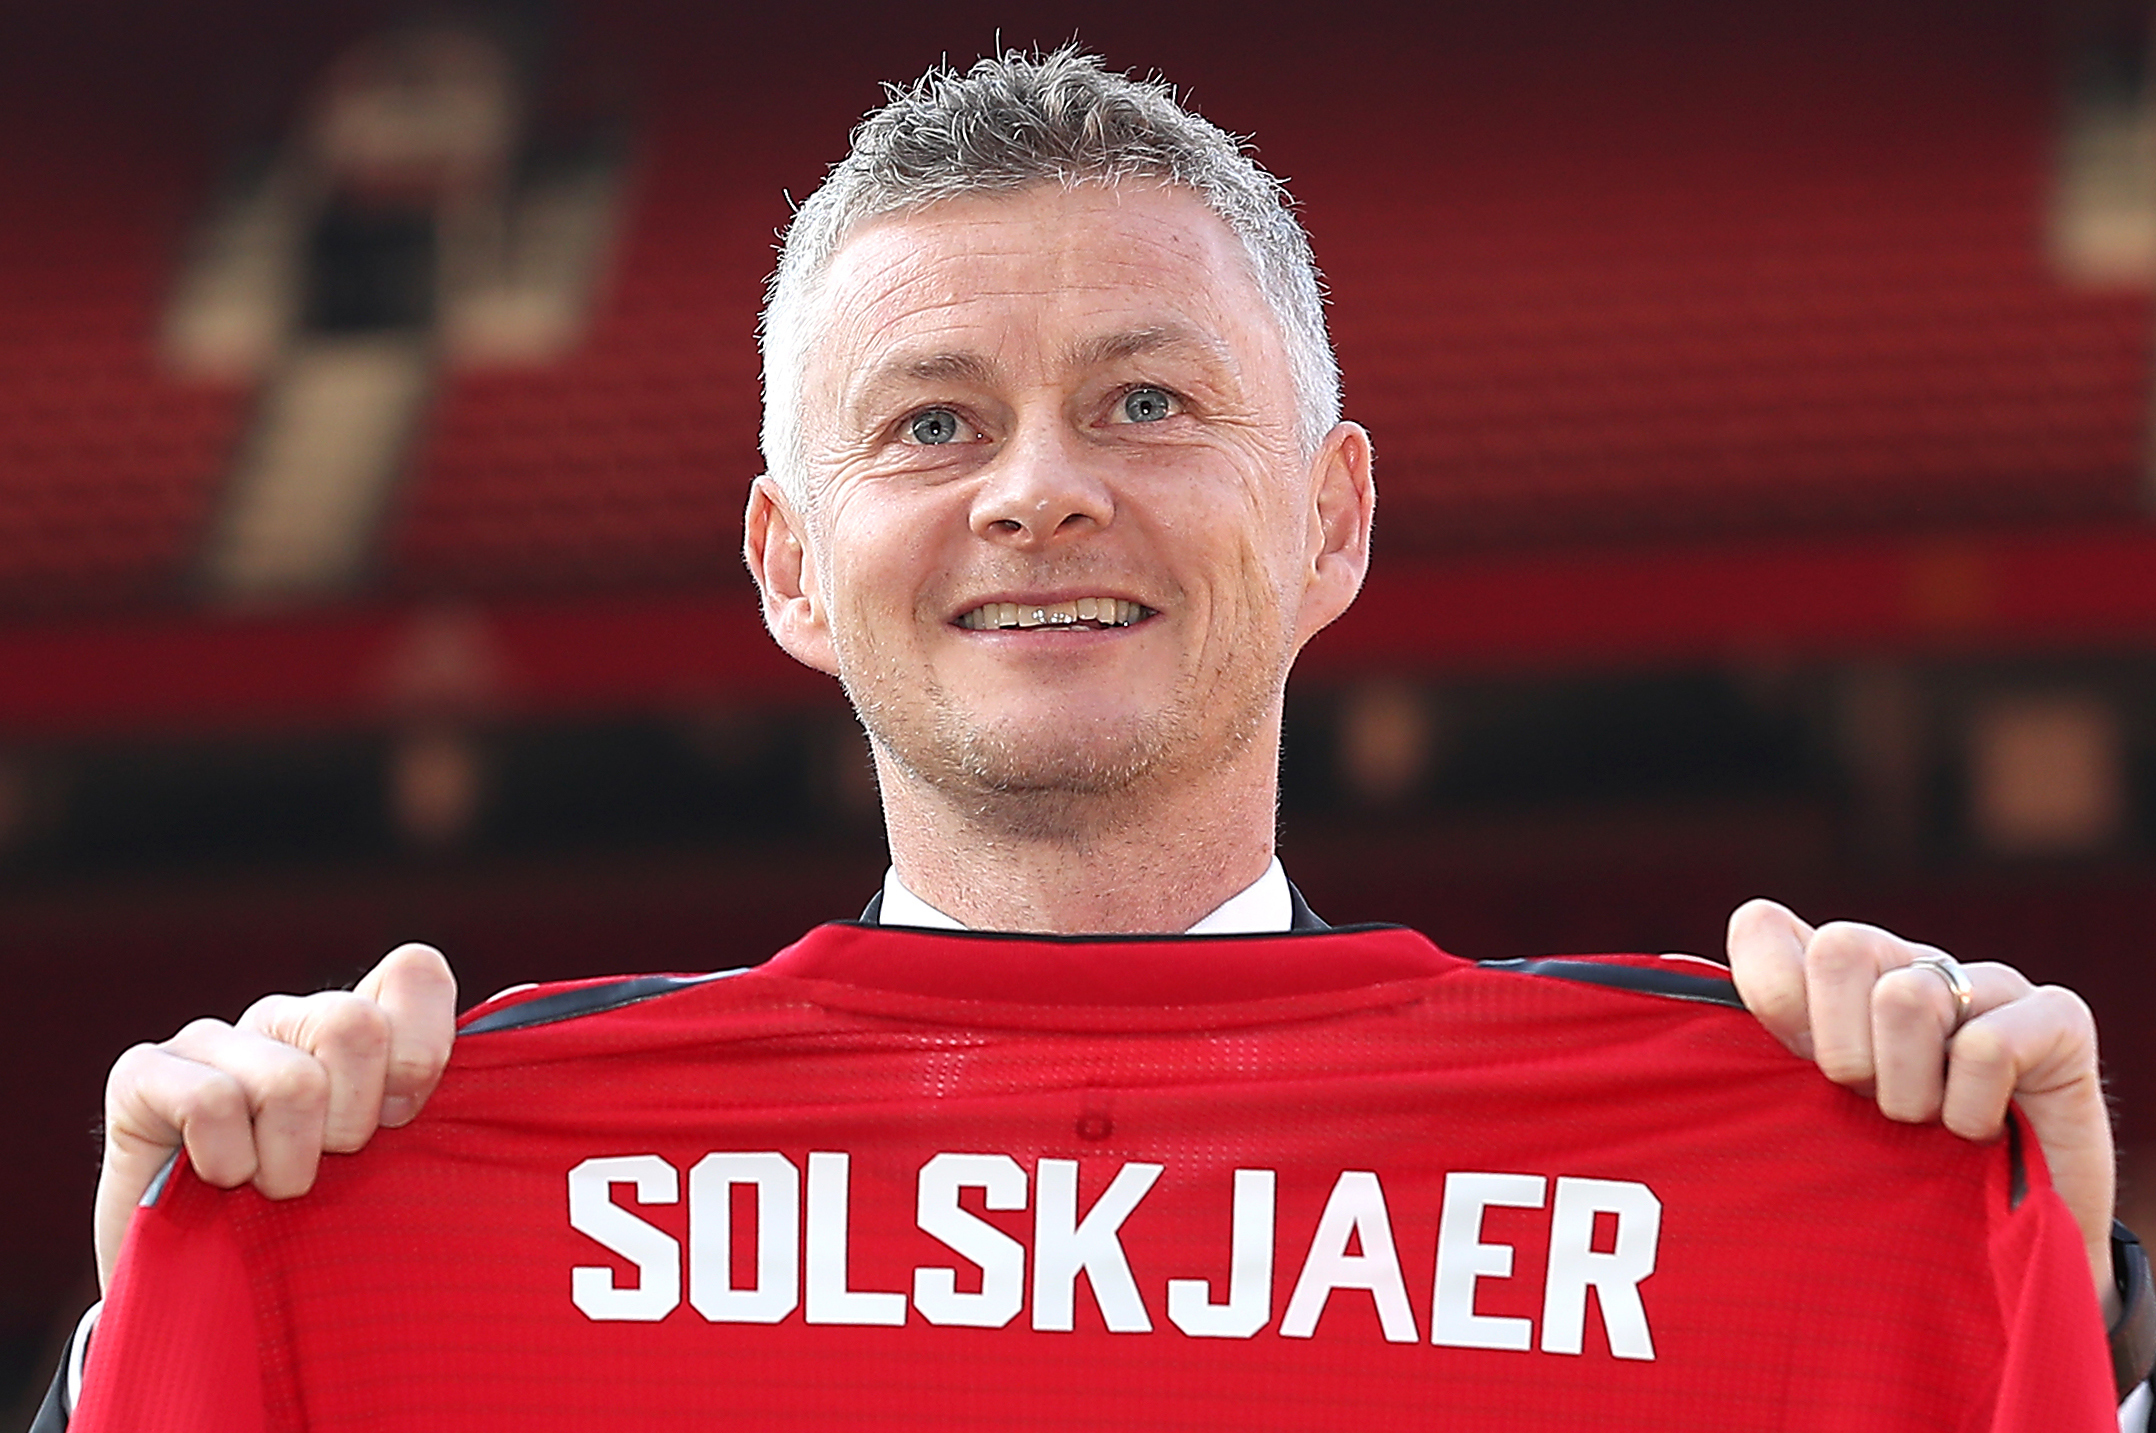 Ole Gunnar Solskjaer was appointed United's permanent manager in March